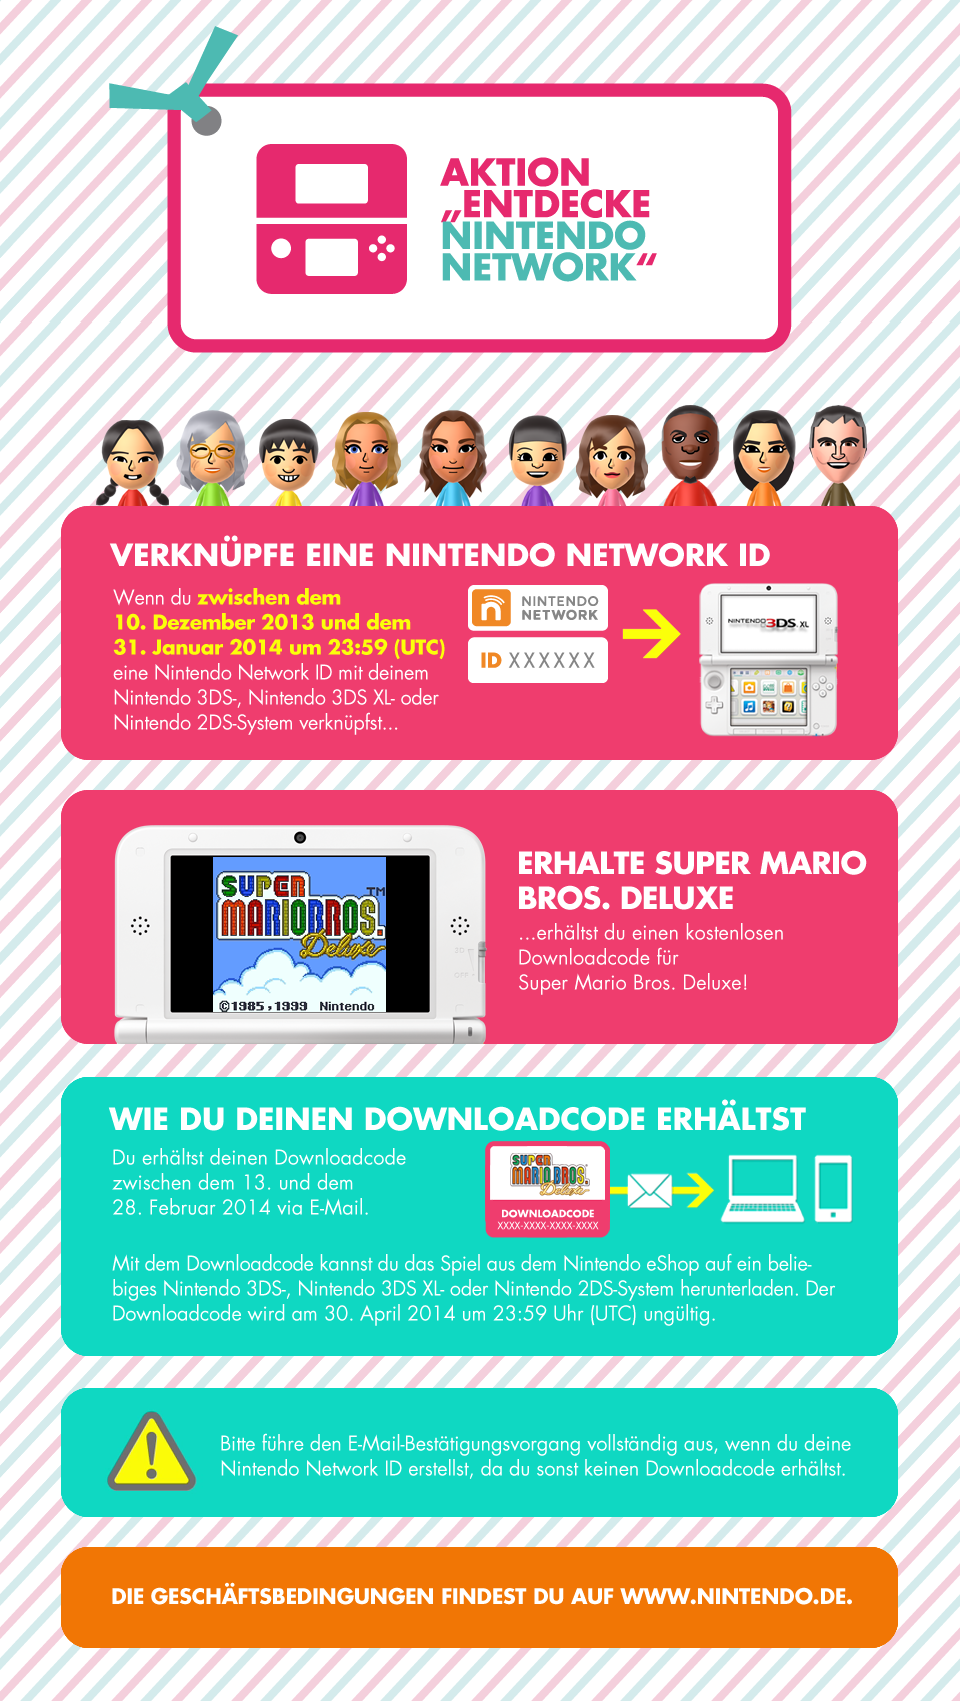 how to find nintendo network id